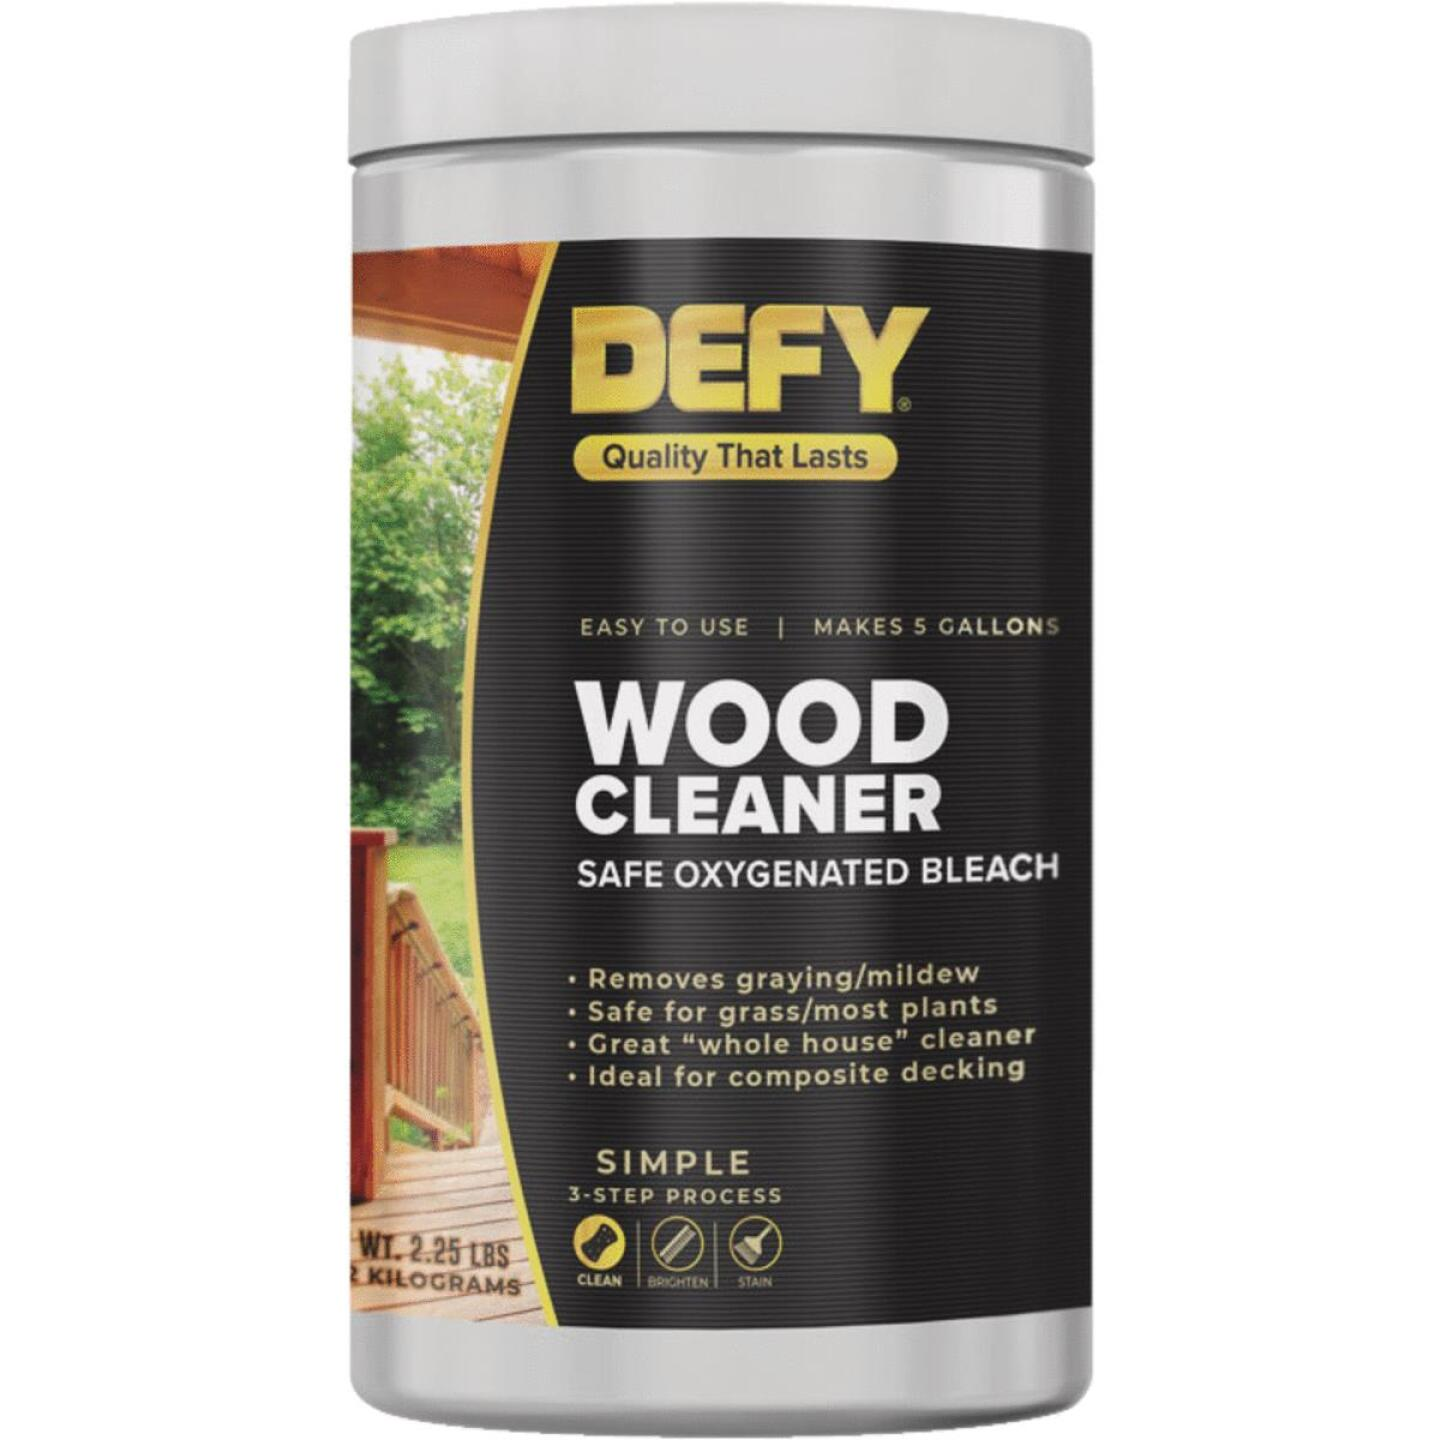 DEFY 2.25 Lb. Wood Cleaner Image 1